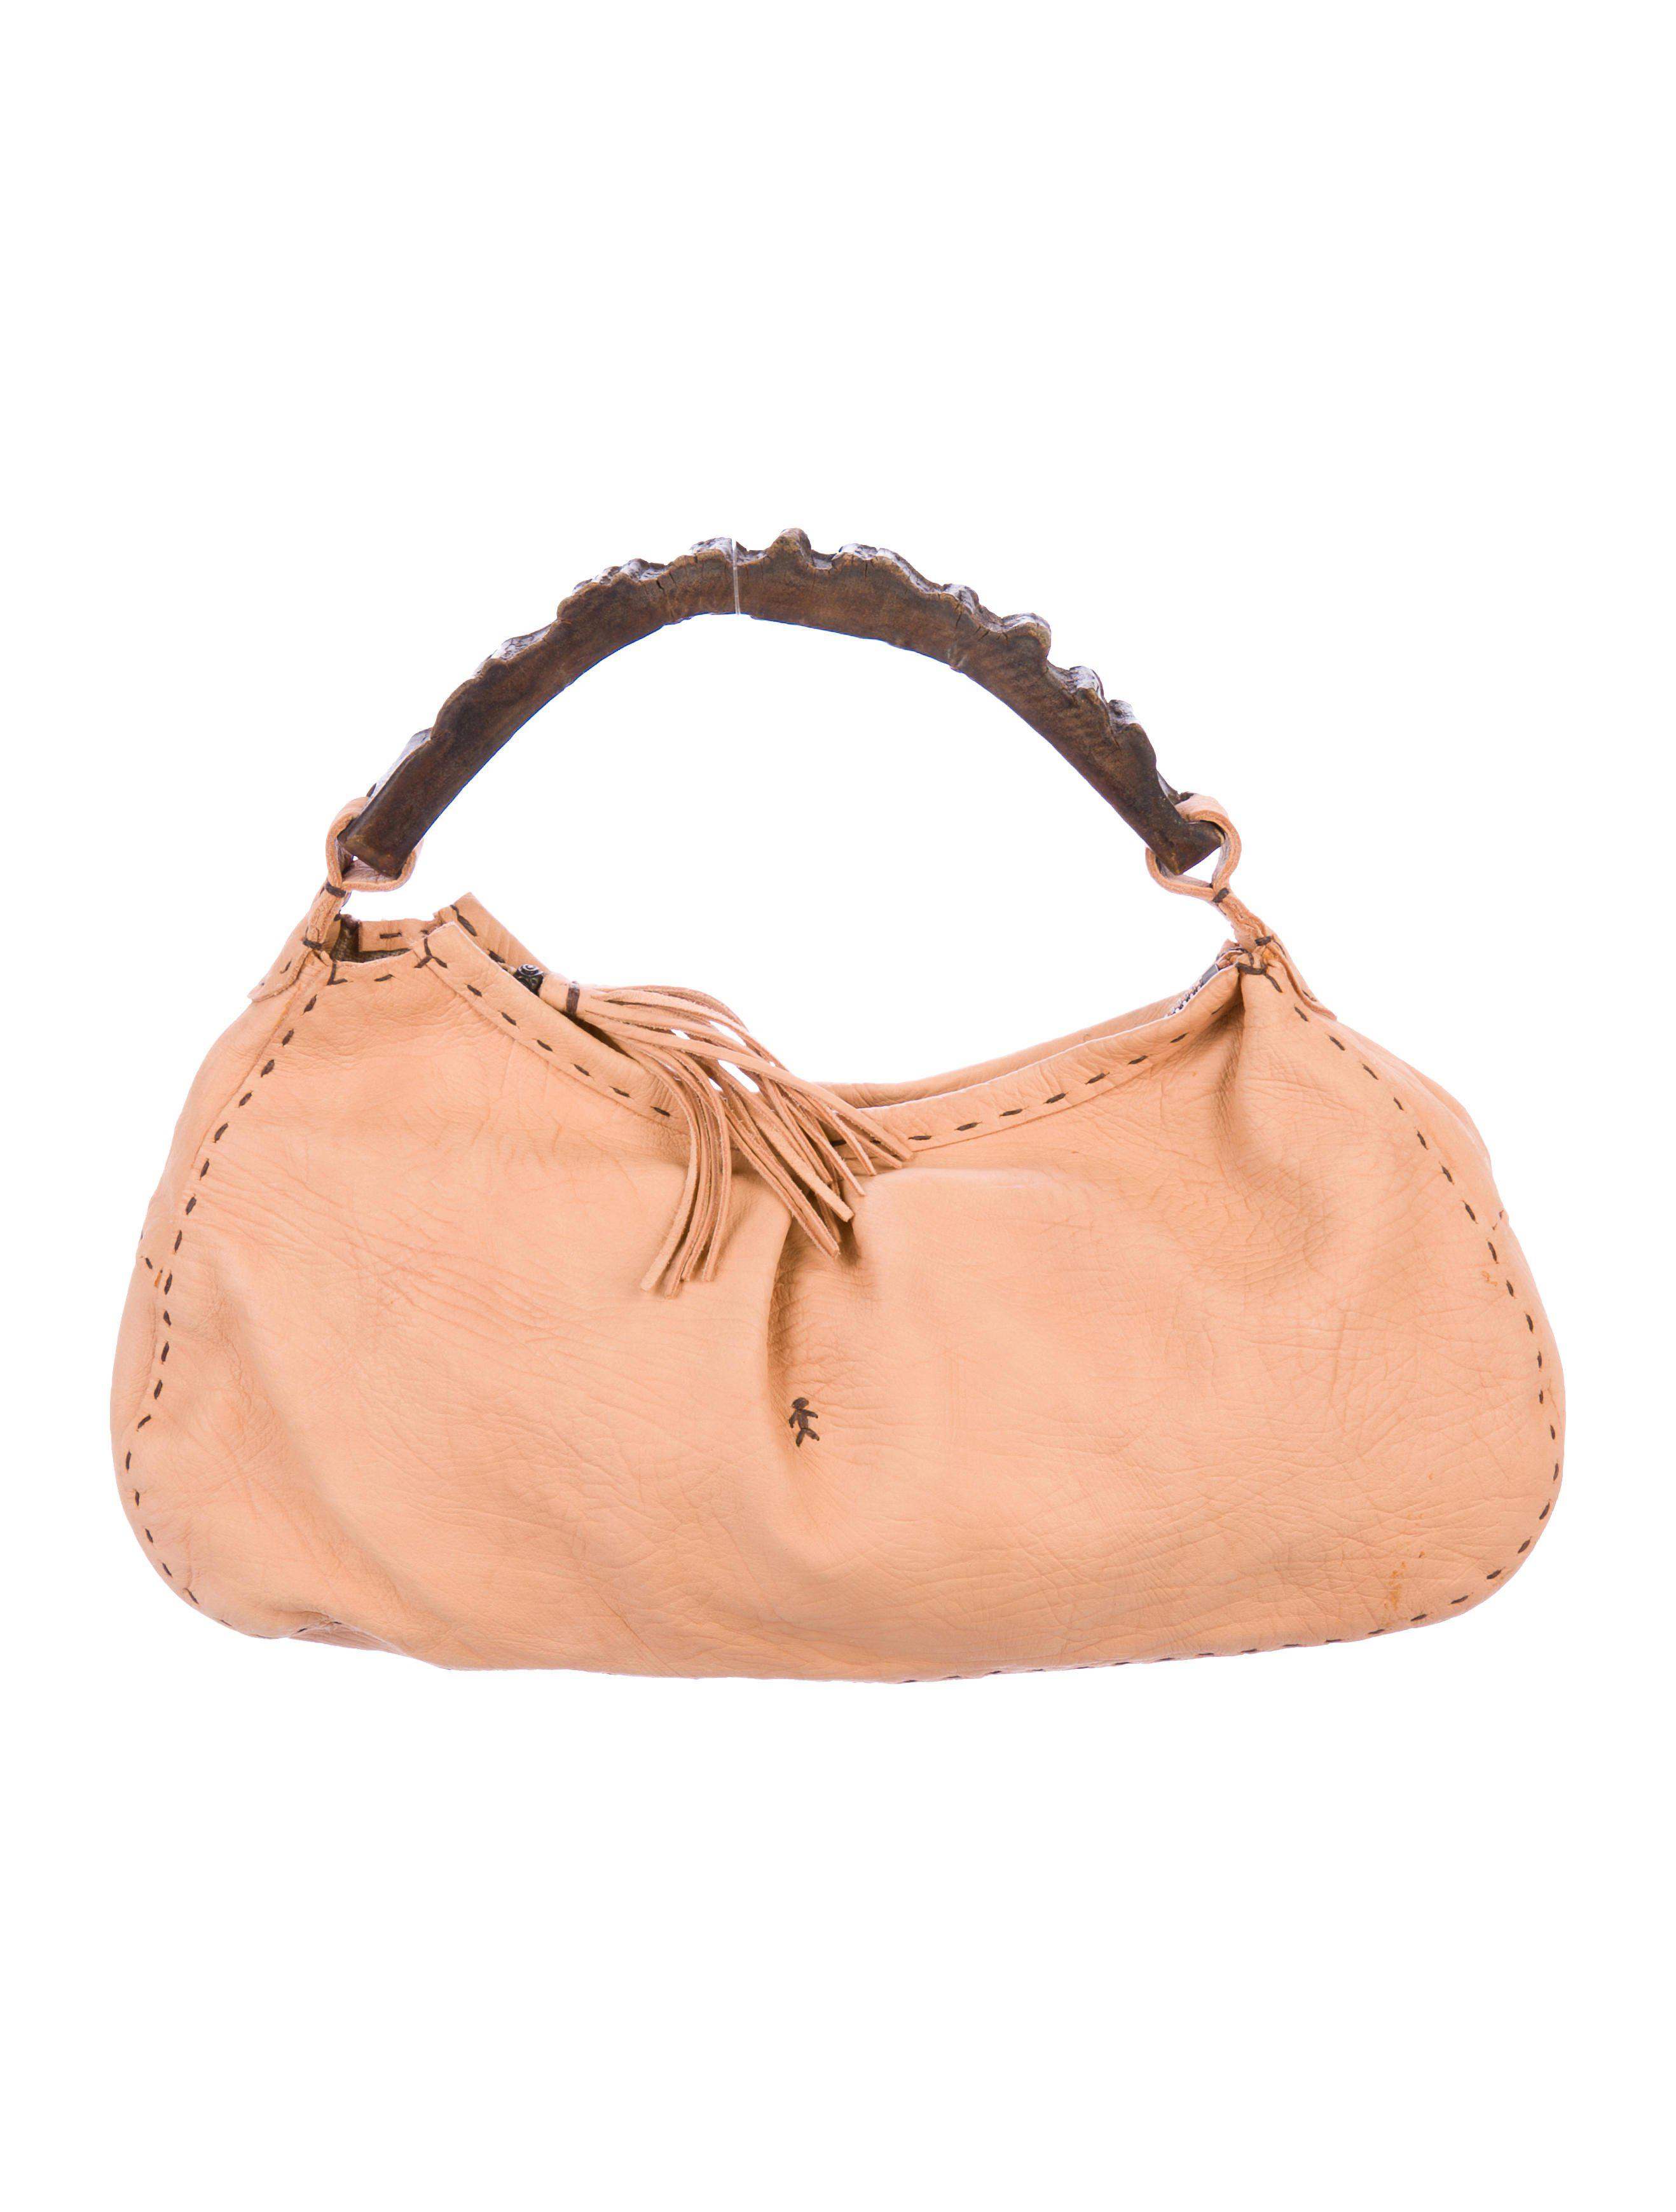 Lyst - Henry Beguelin Distressed Leather Handle Bag Gold in Metallic 94abfad8f8525